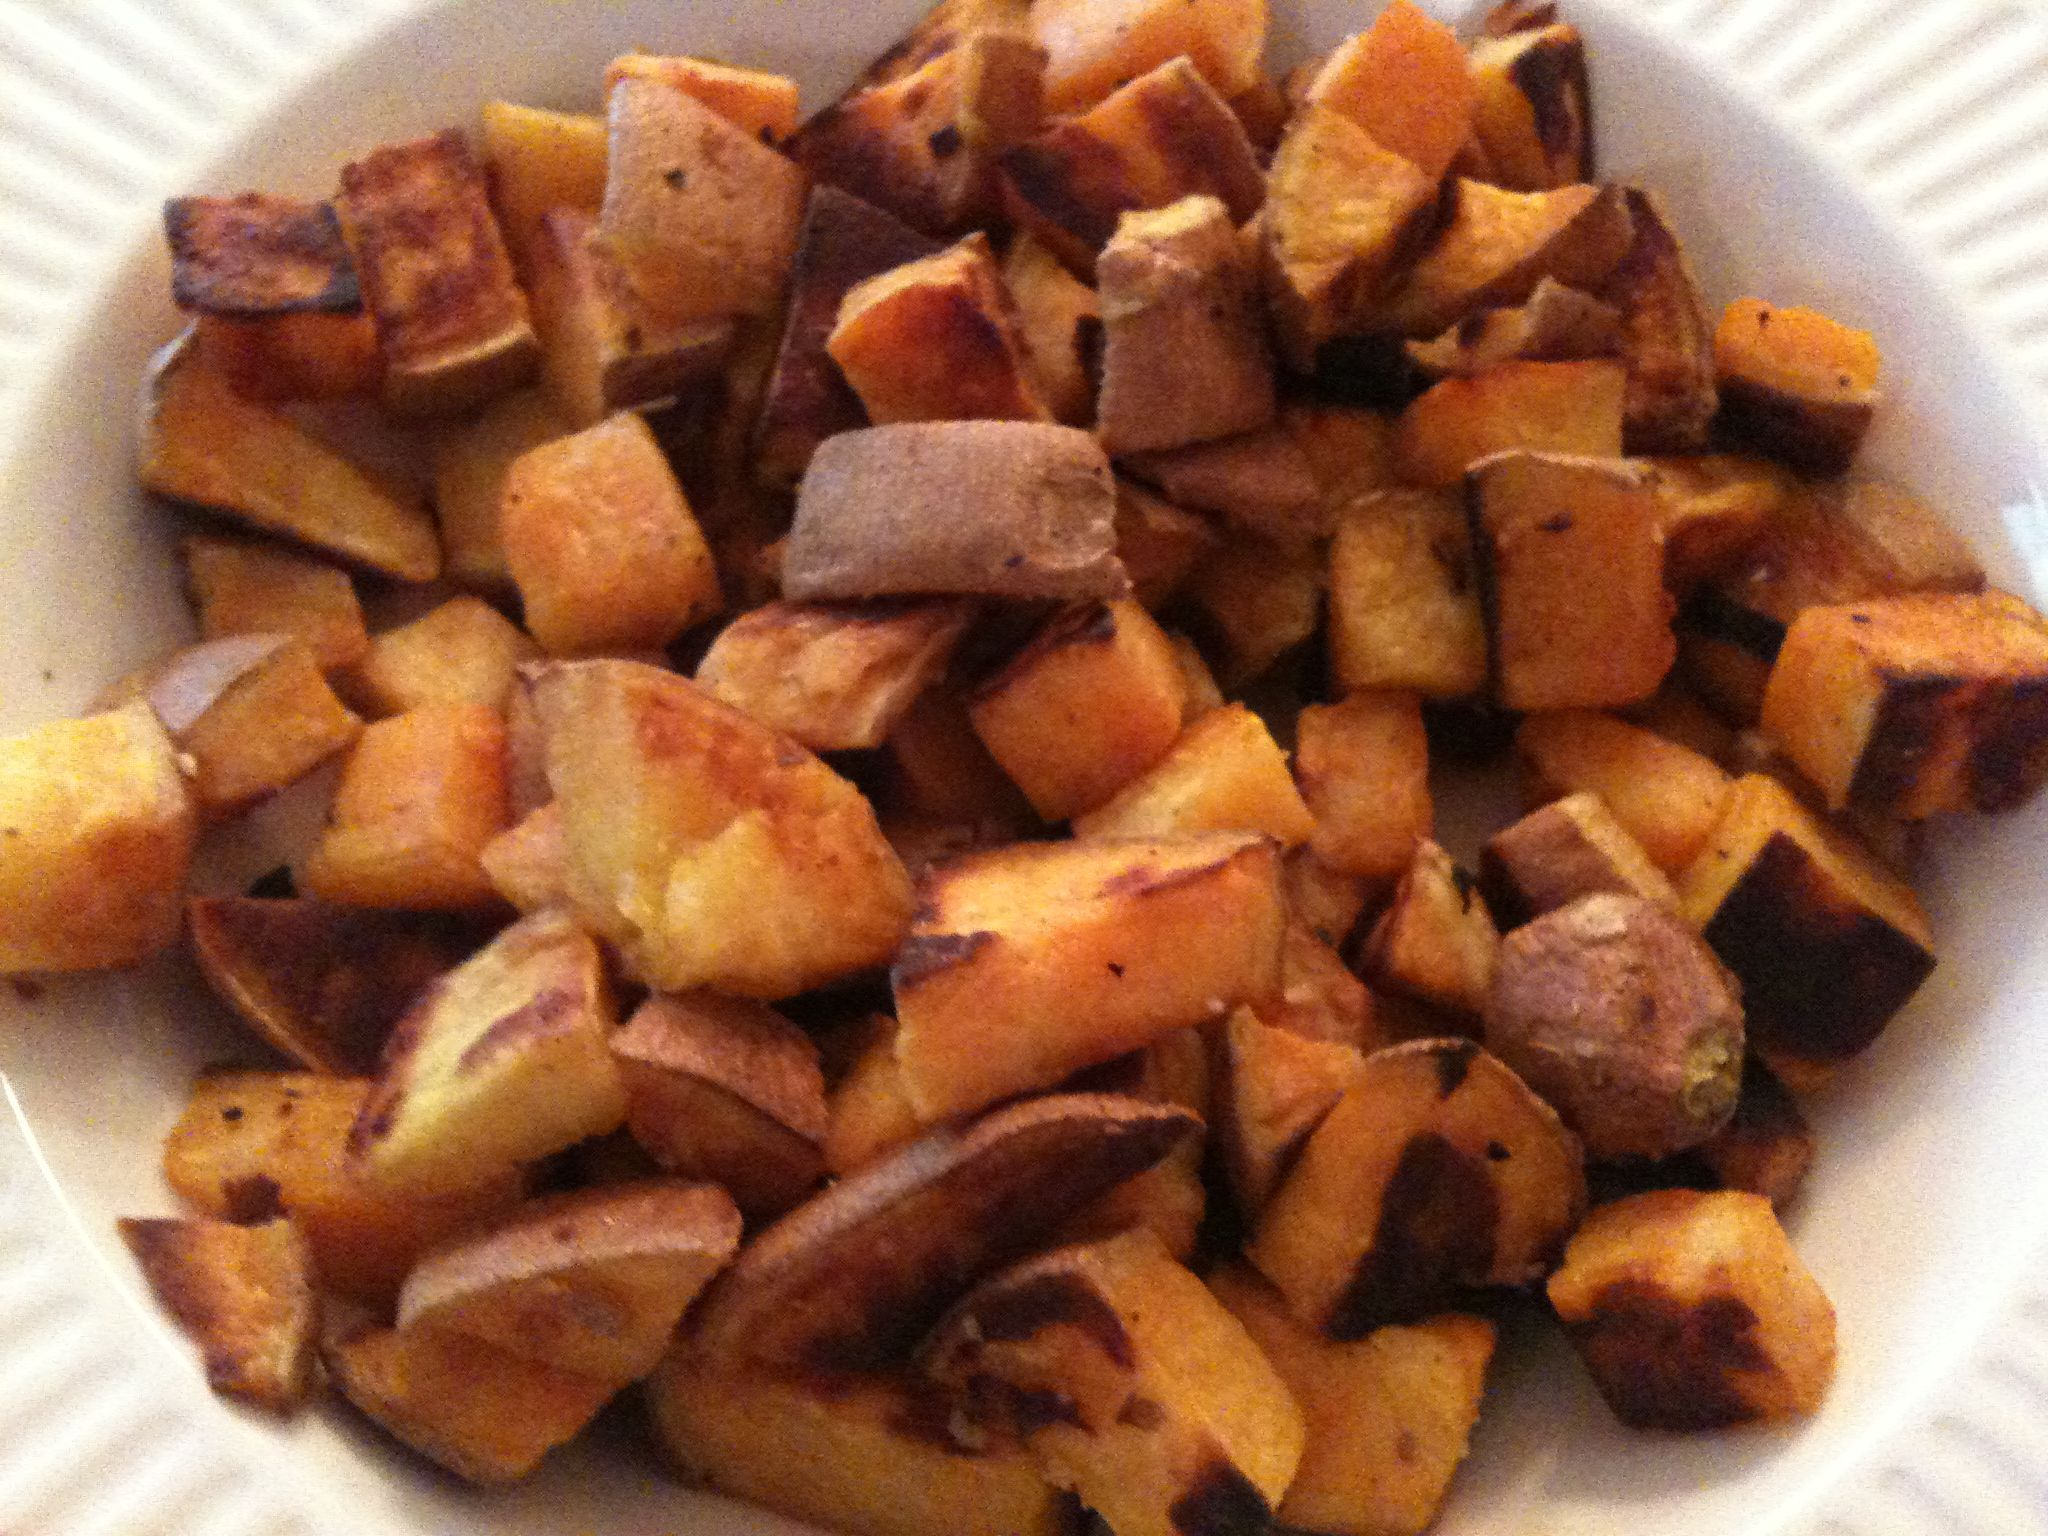 baked sweet potatoes cubed